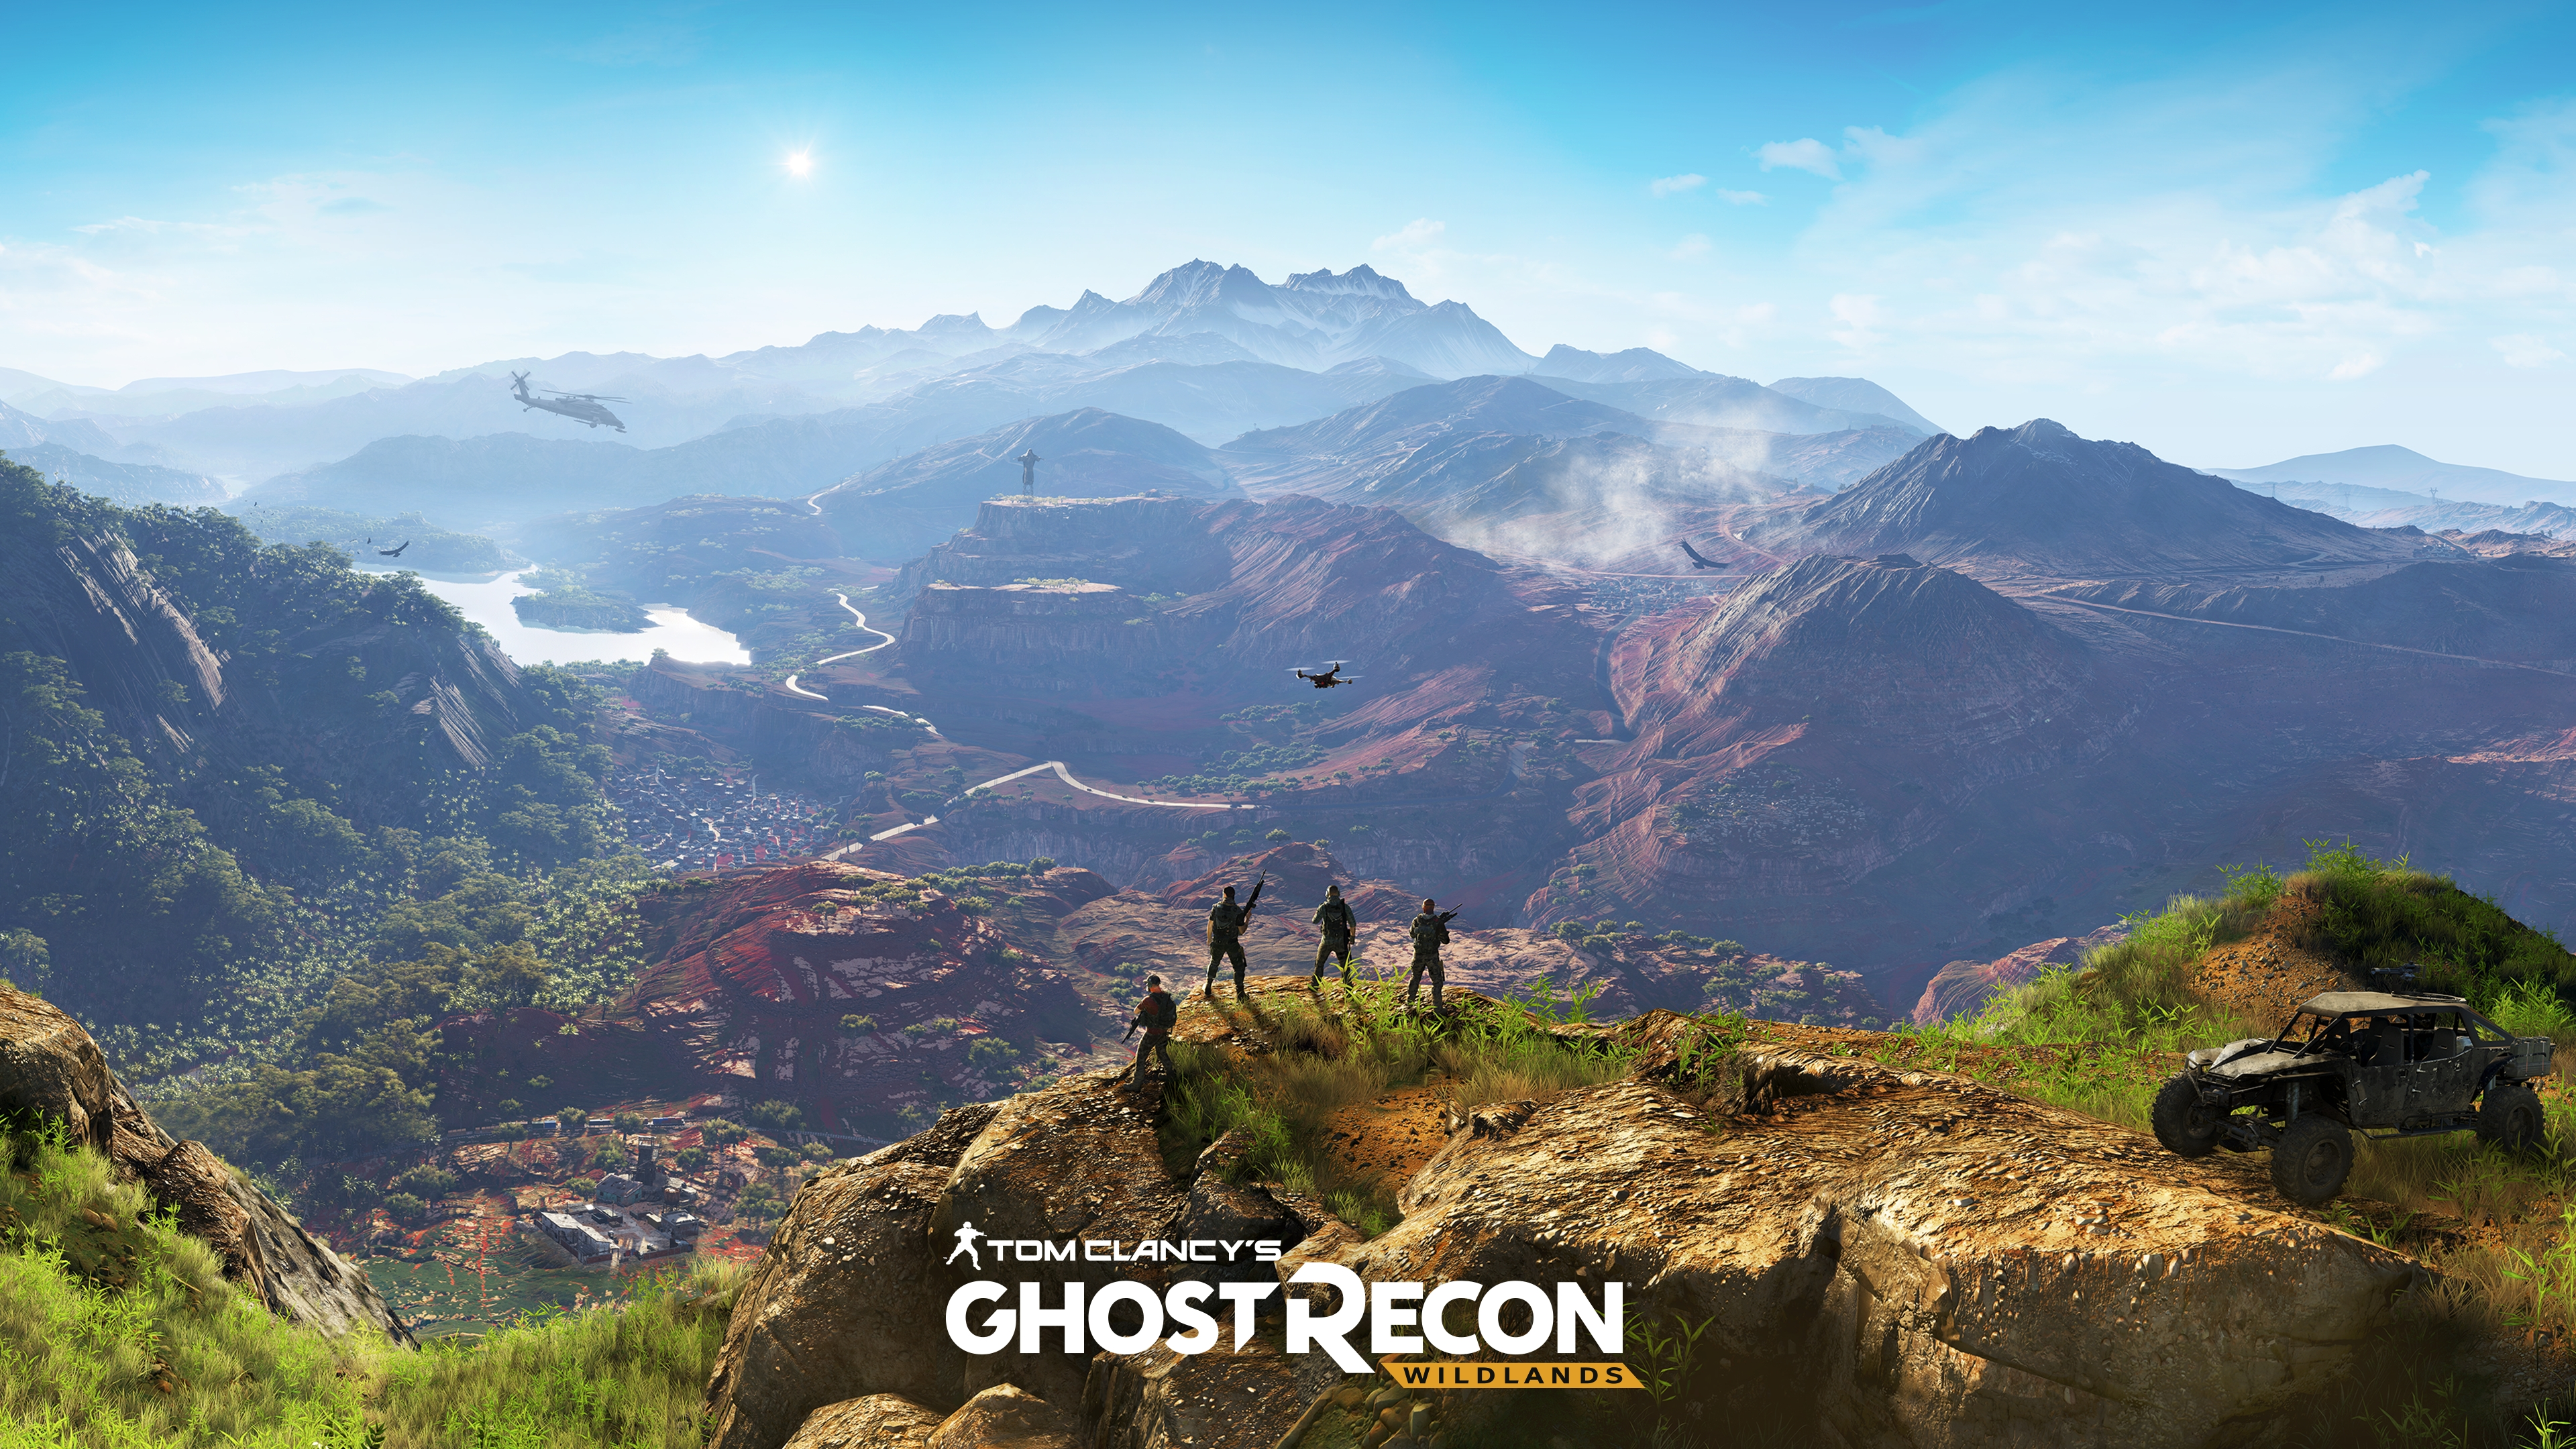 What is Ghost Recon Wildlands?